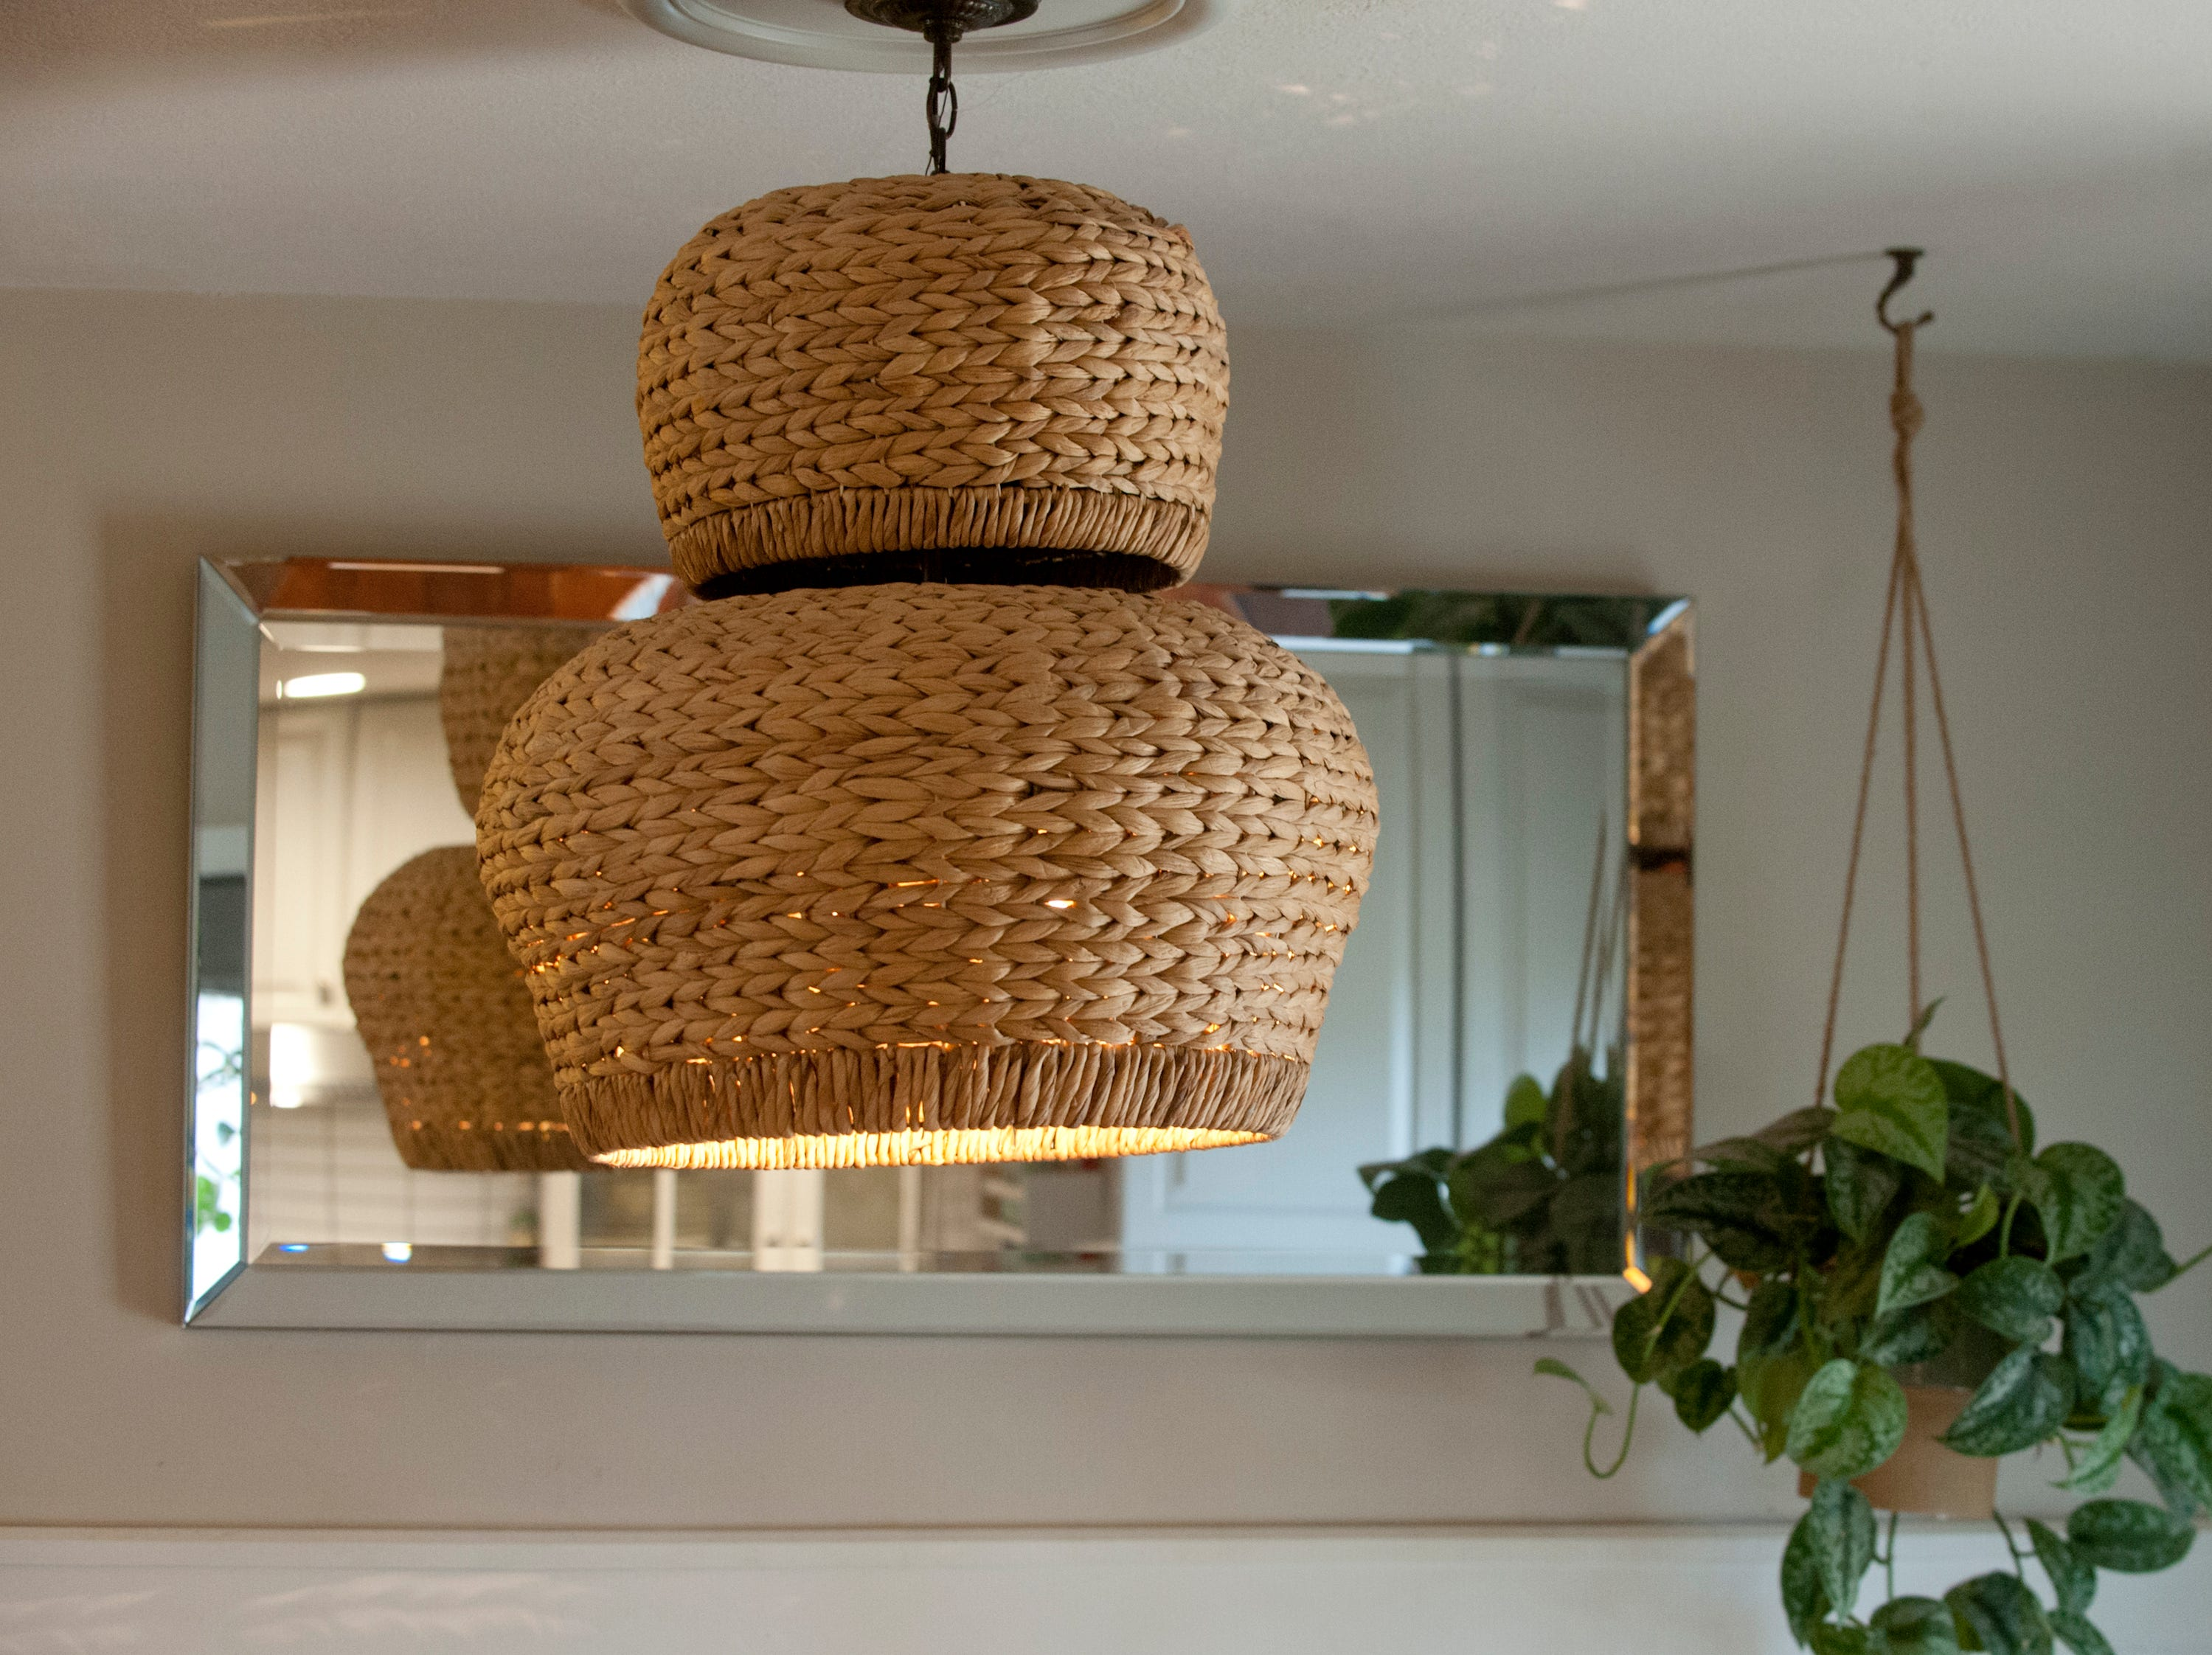 Detail of the basket light fixture above the kitchen table.